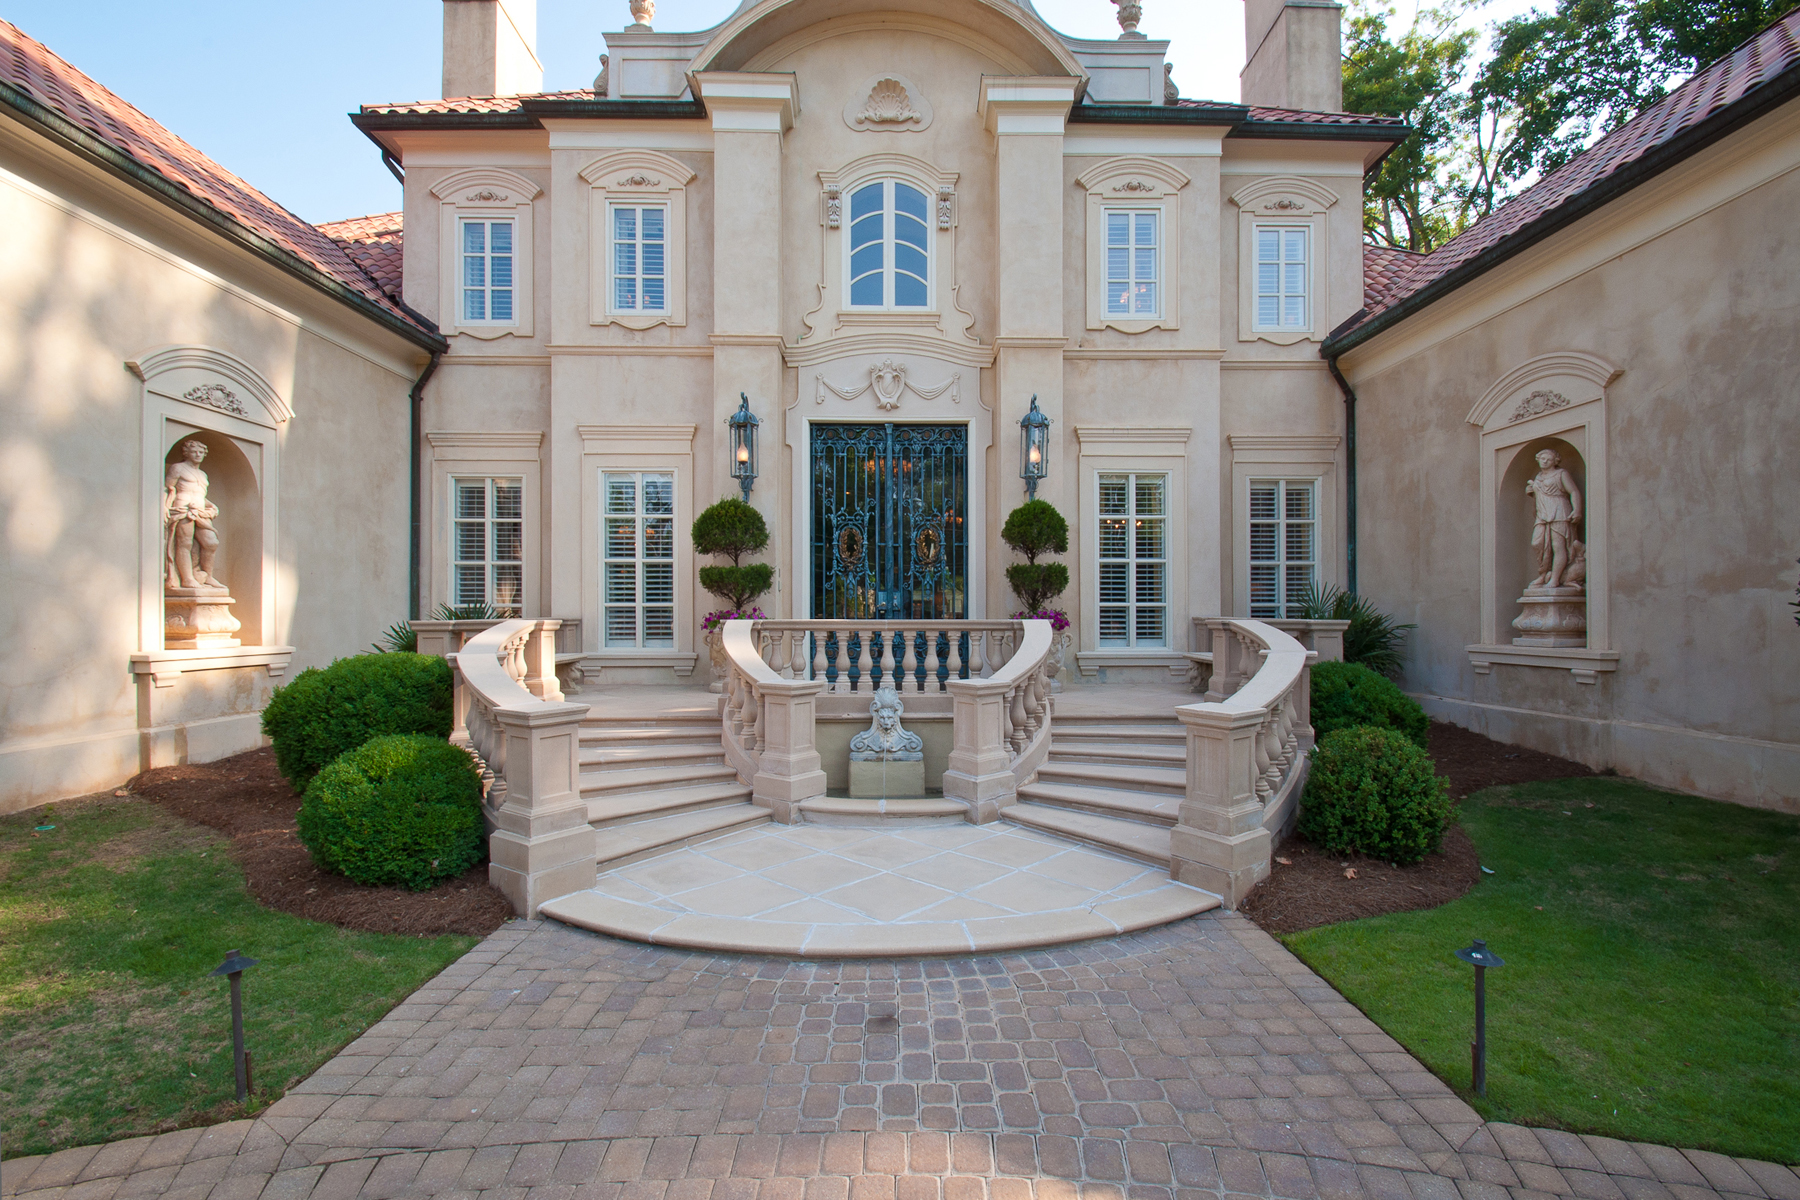 独户住宅 为 销售 在 Magnificent Mediterranean Estate 4670 Northside Drive North Buckhead, 亚特兰大, 乔治亚州, 30327 美国